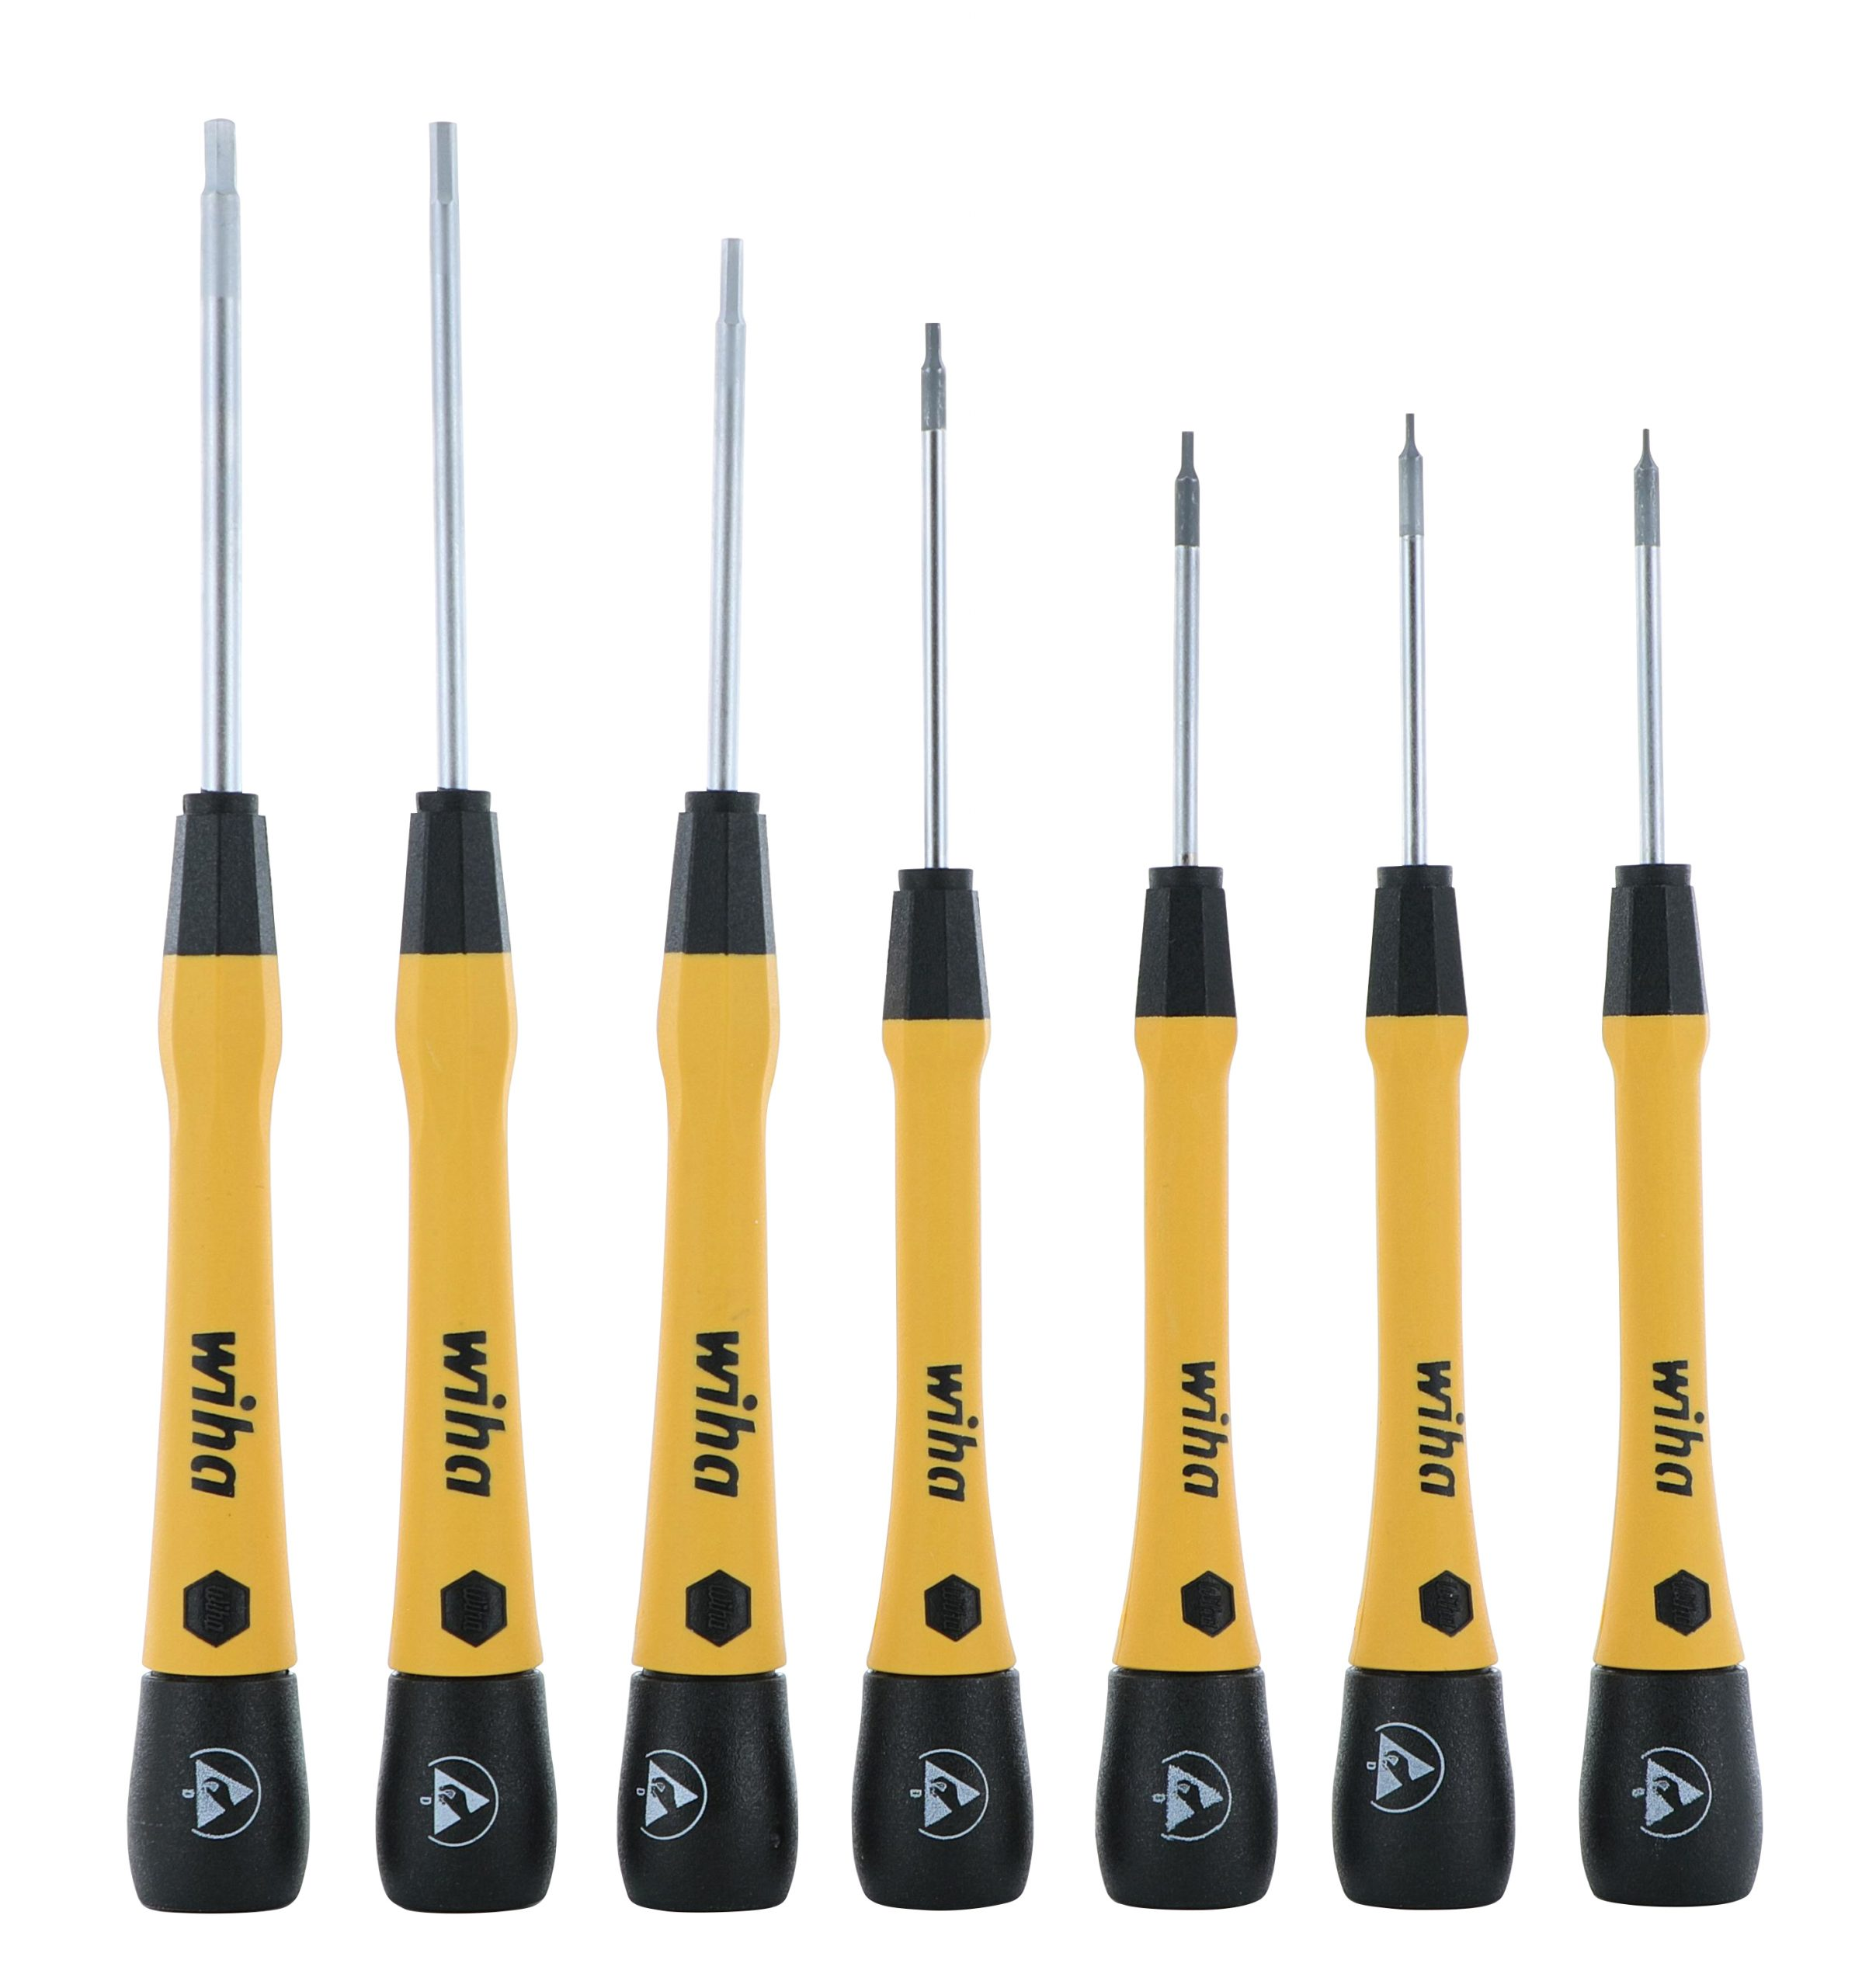 ESD Safe Precision Screwdrivers in PicoFinish Style